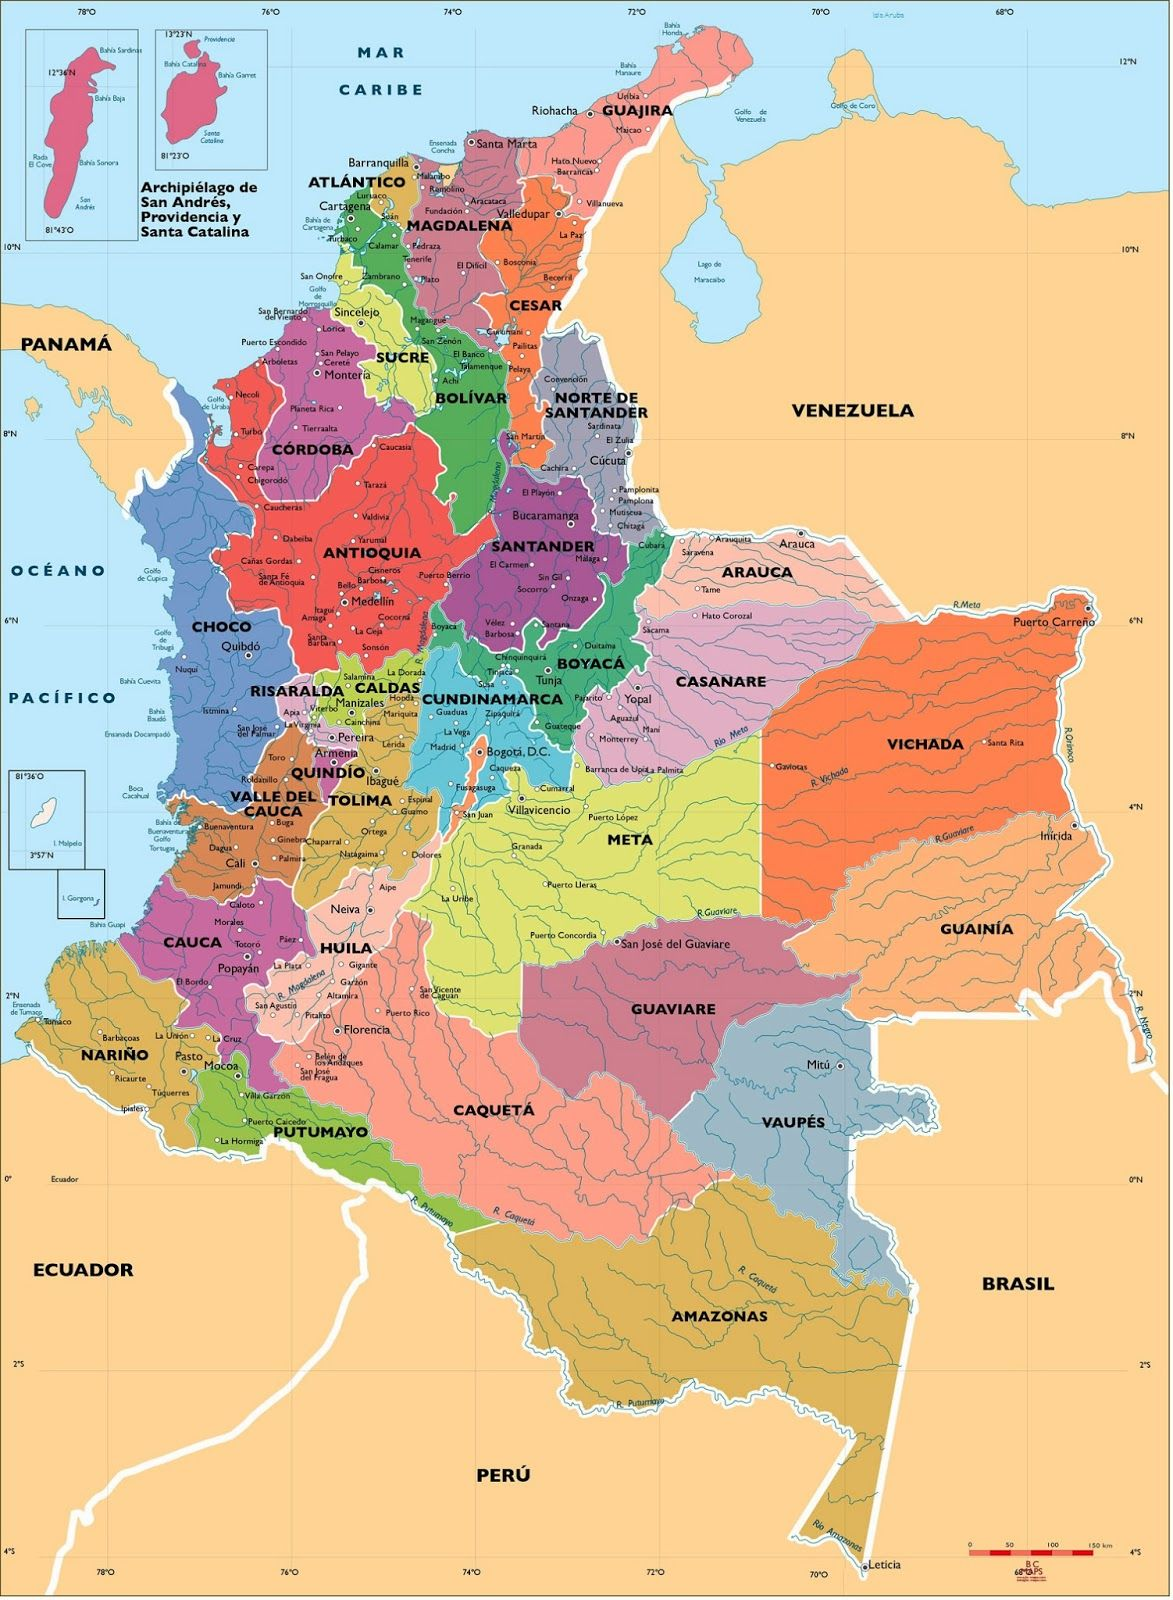 COLOMBIAPOLITICALVECTORMAPjpg 11731600 Colombia Pinterest